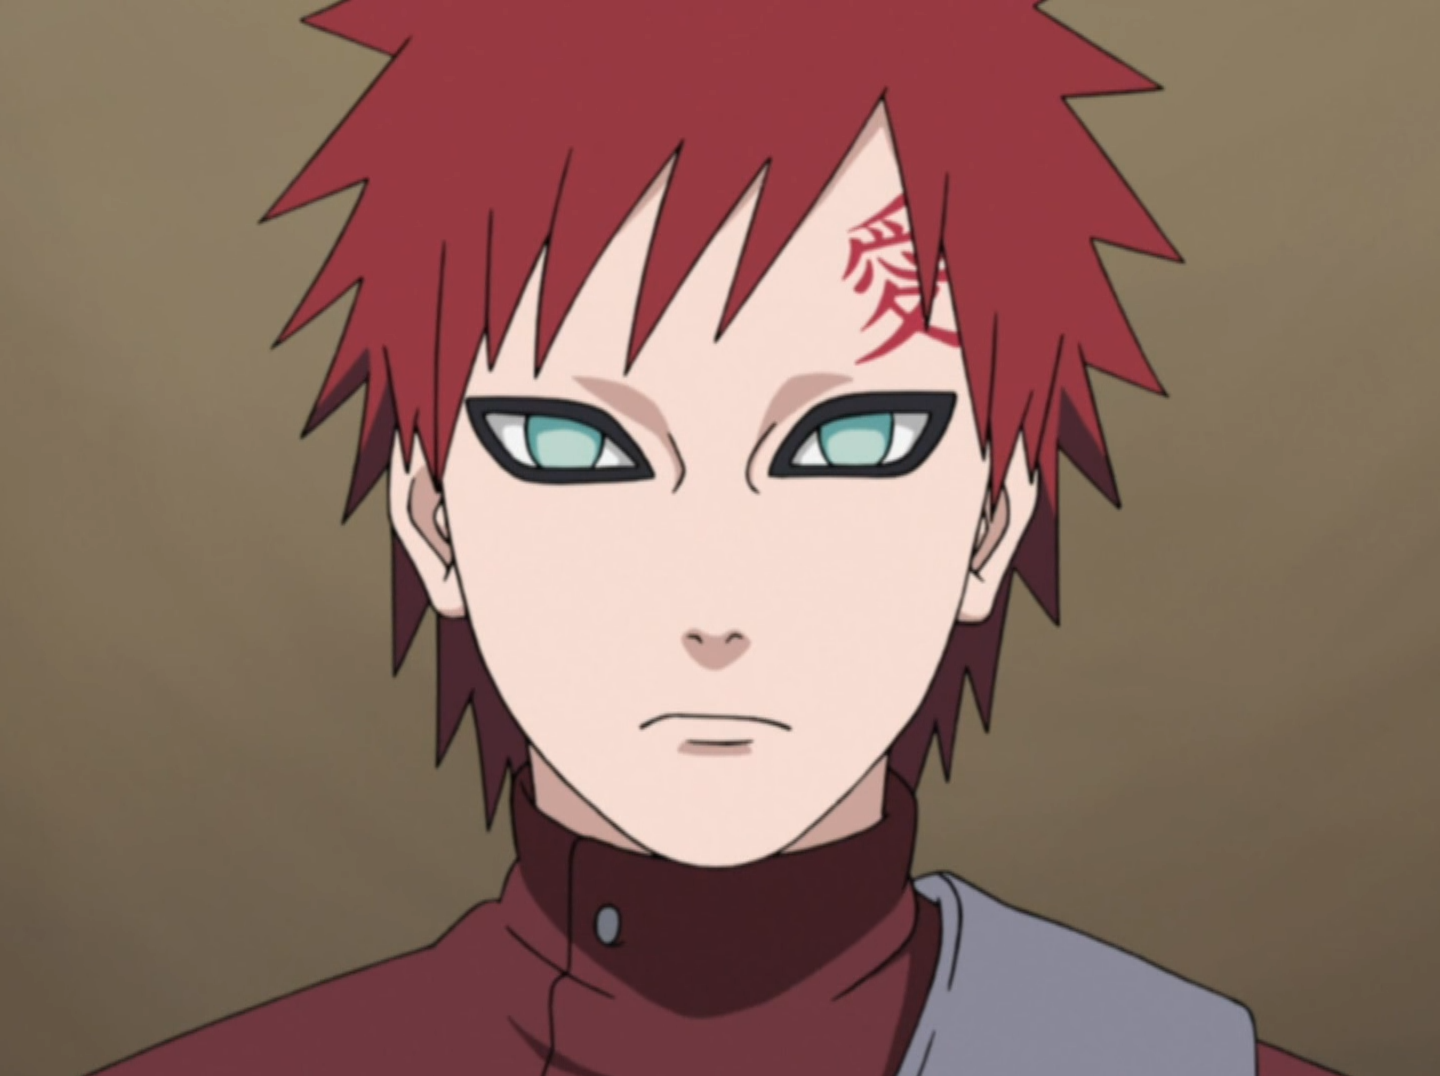 gaara naruto - photo #42